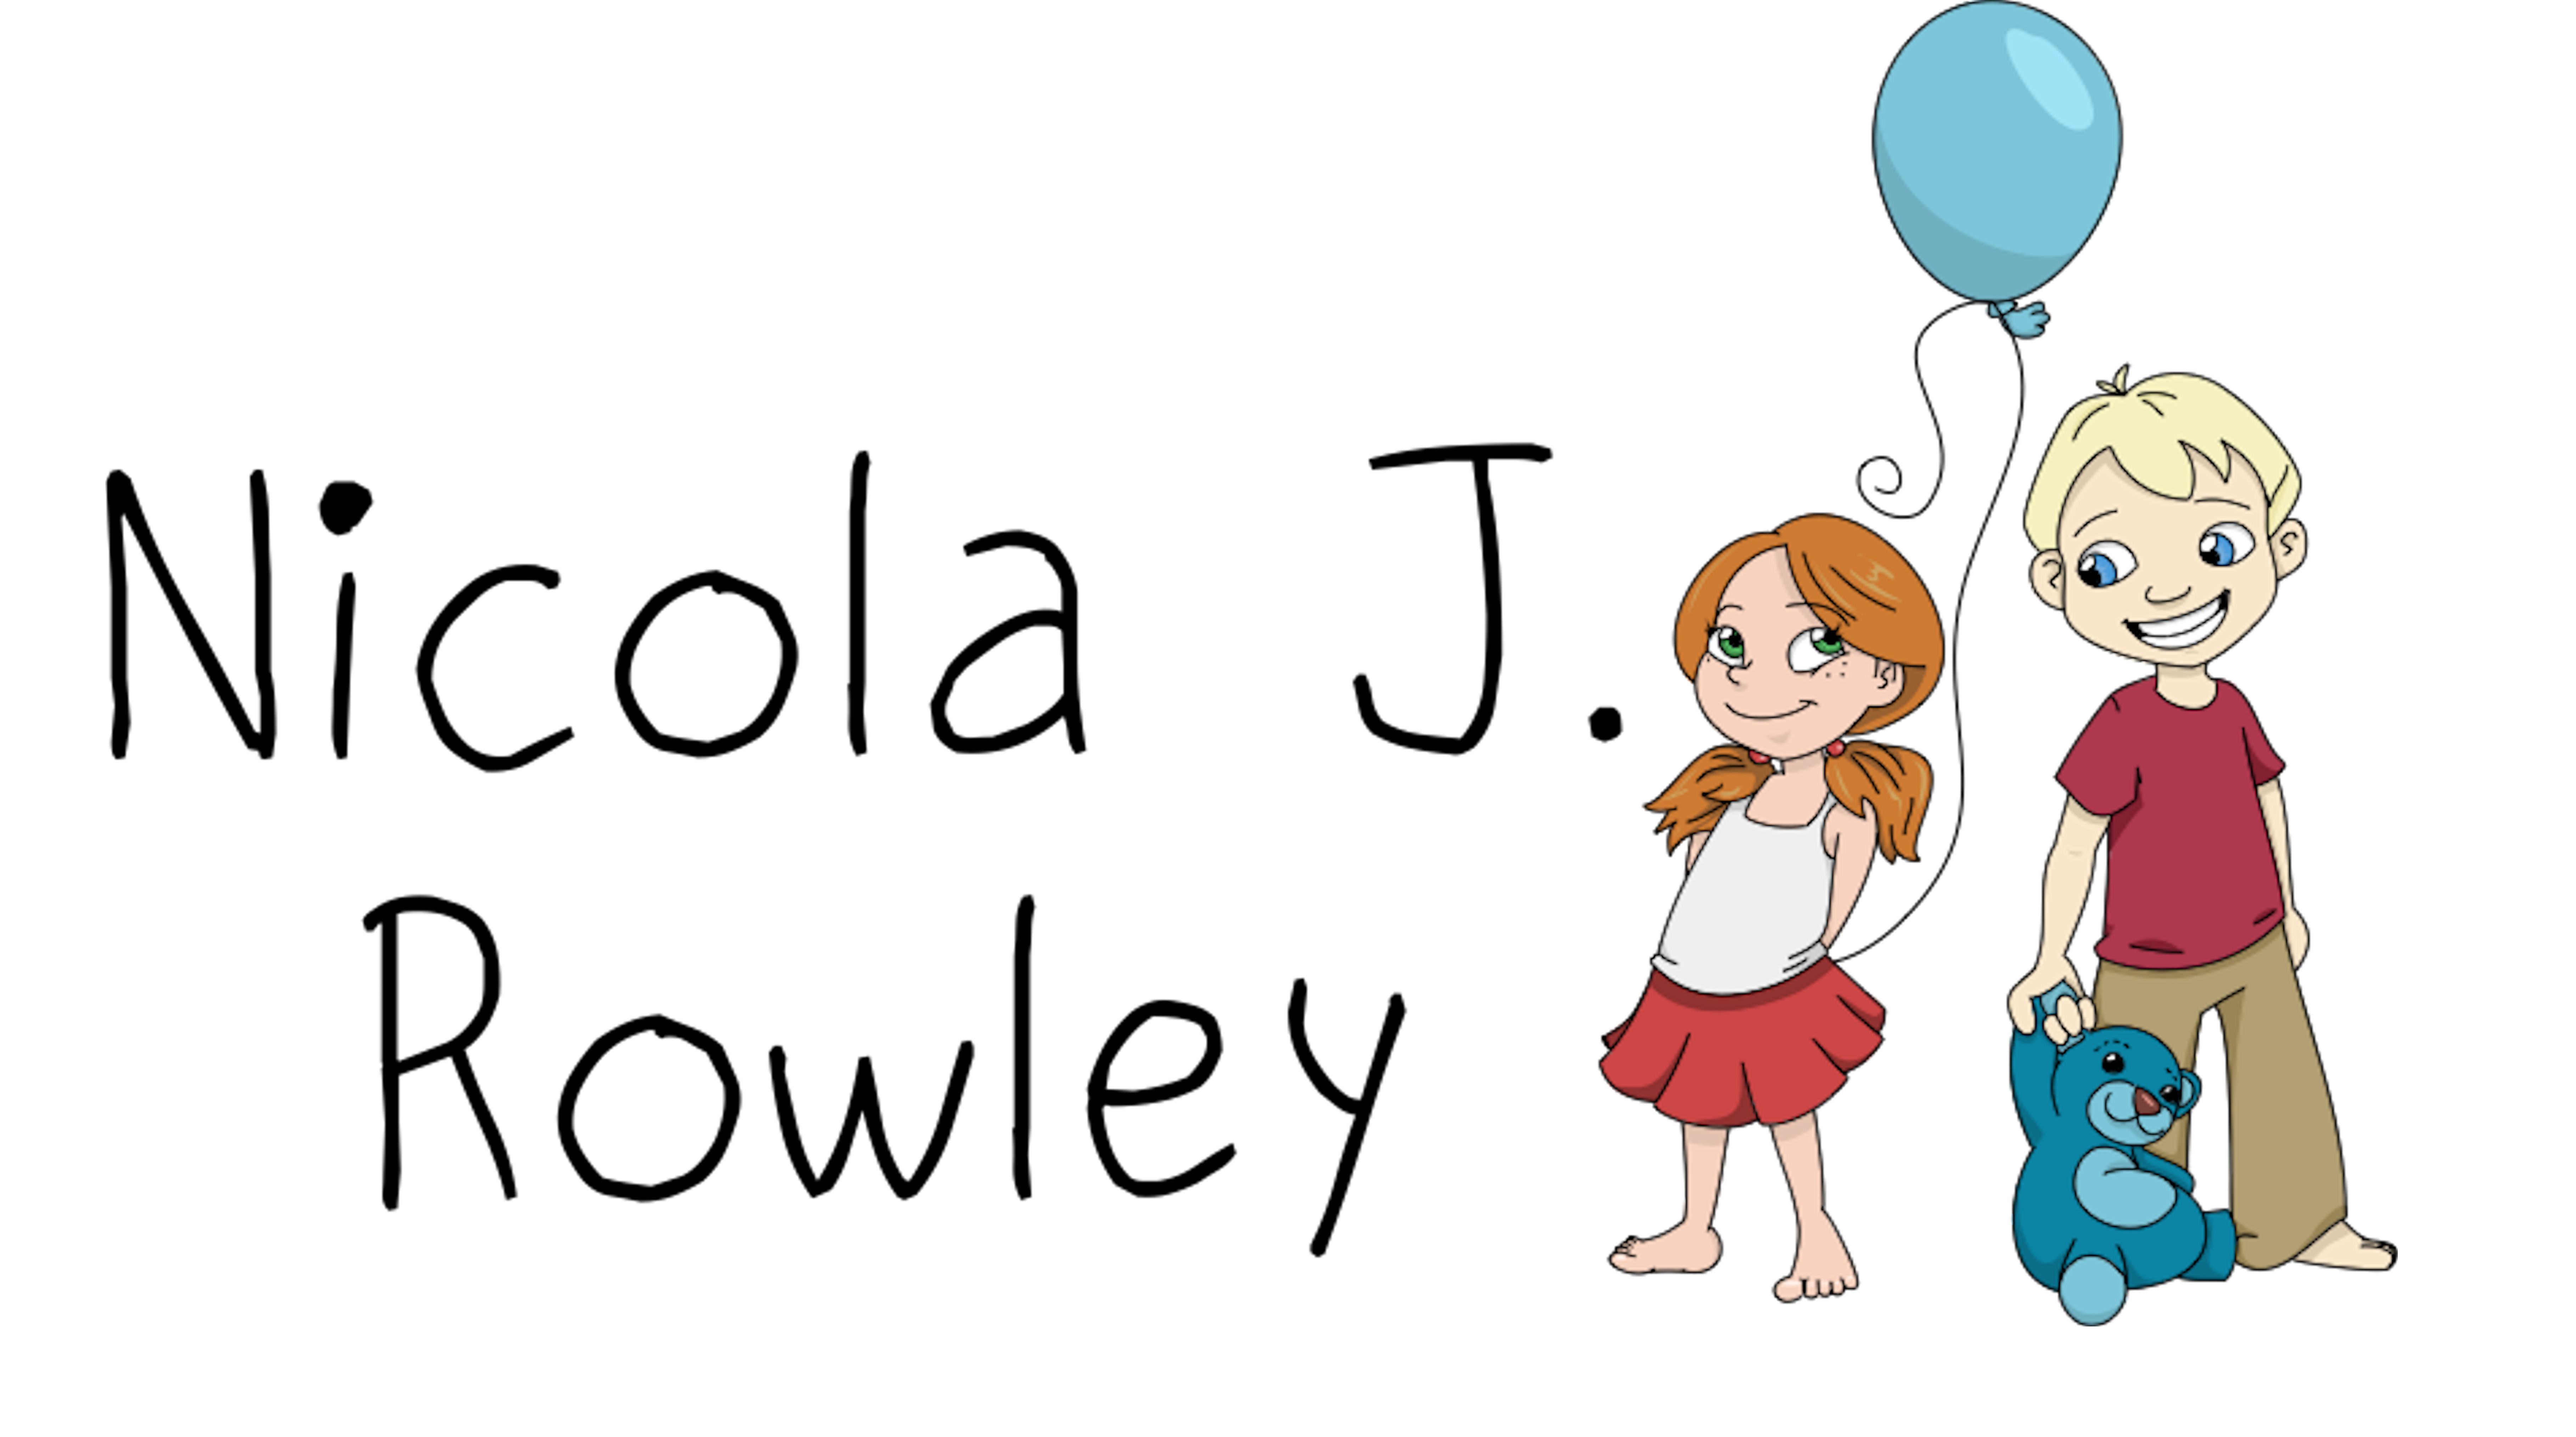 Children's Author Nicola J Rowley